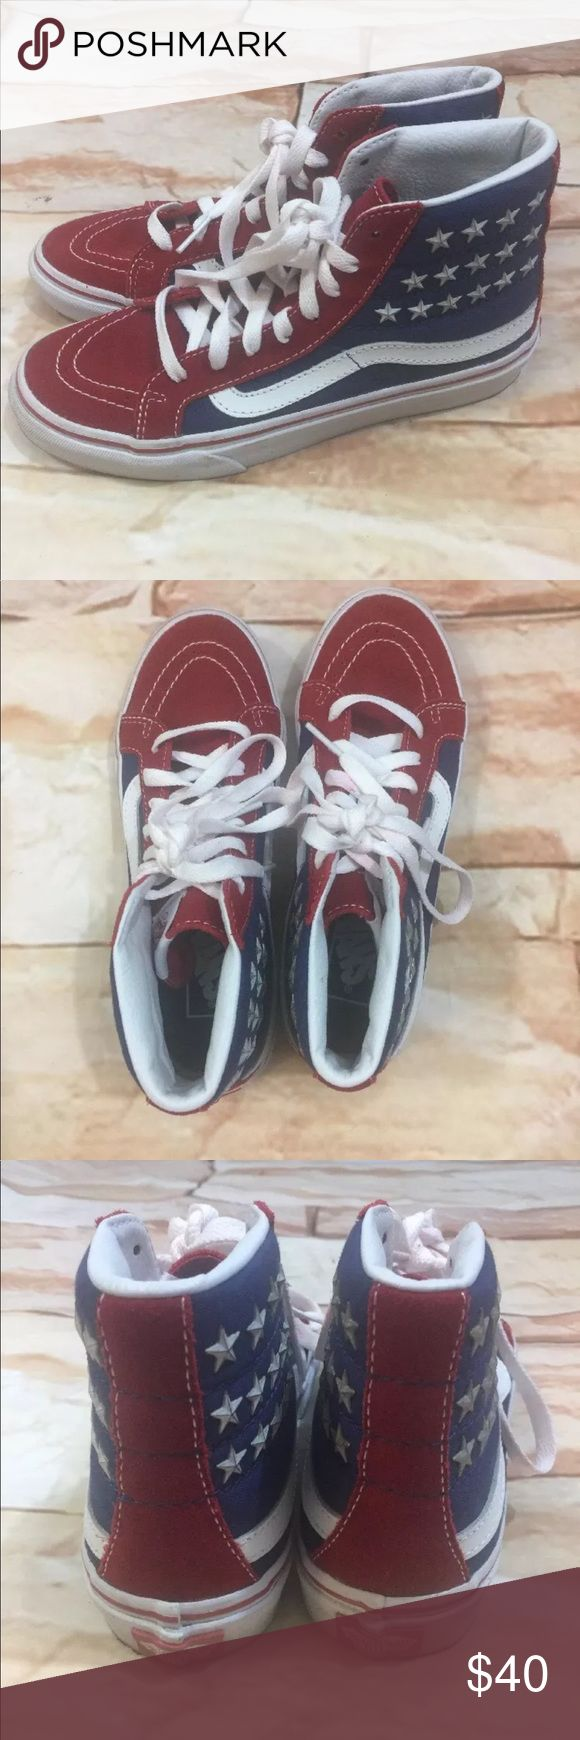 Vans Sk8 Hi Slim Studded Star Flag Print Shoes Vans Sk8 Hi Slim Studded Star Flag Print Shoes Mens 5 / Womens 6.5 Excellent condition! Laces may need to be replaced there is some red fading on them. Vans Shoes